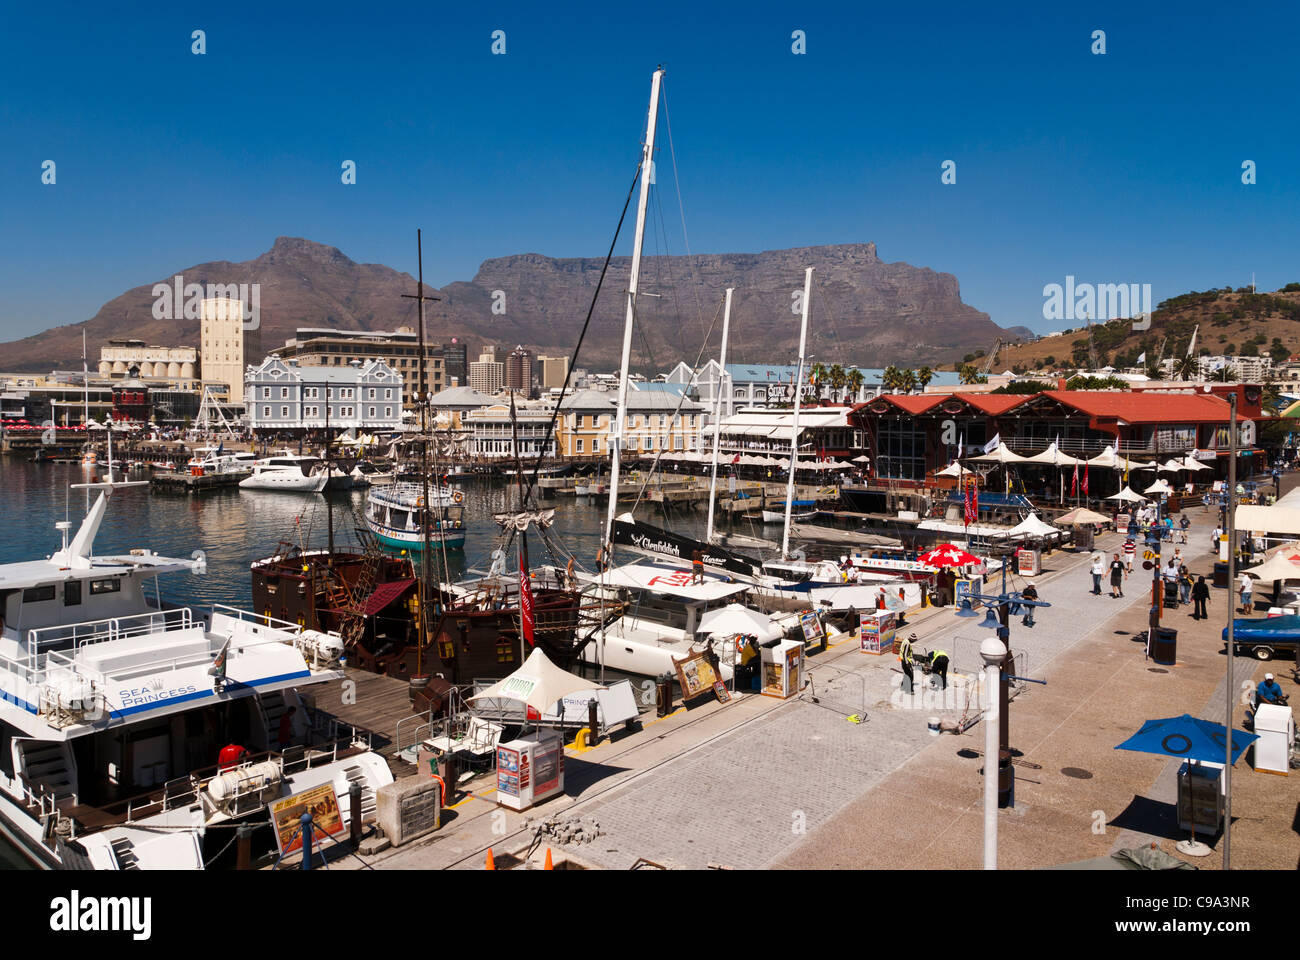 V&A Waterfront, Cape Town, South Africa - Stock Image